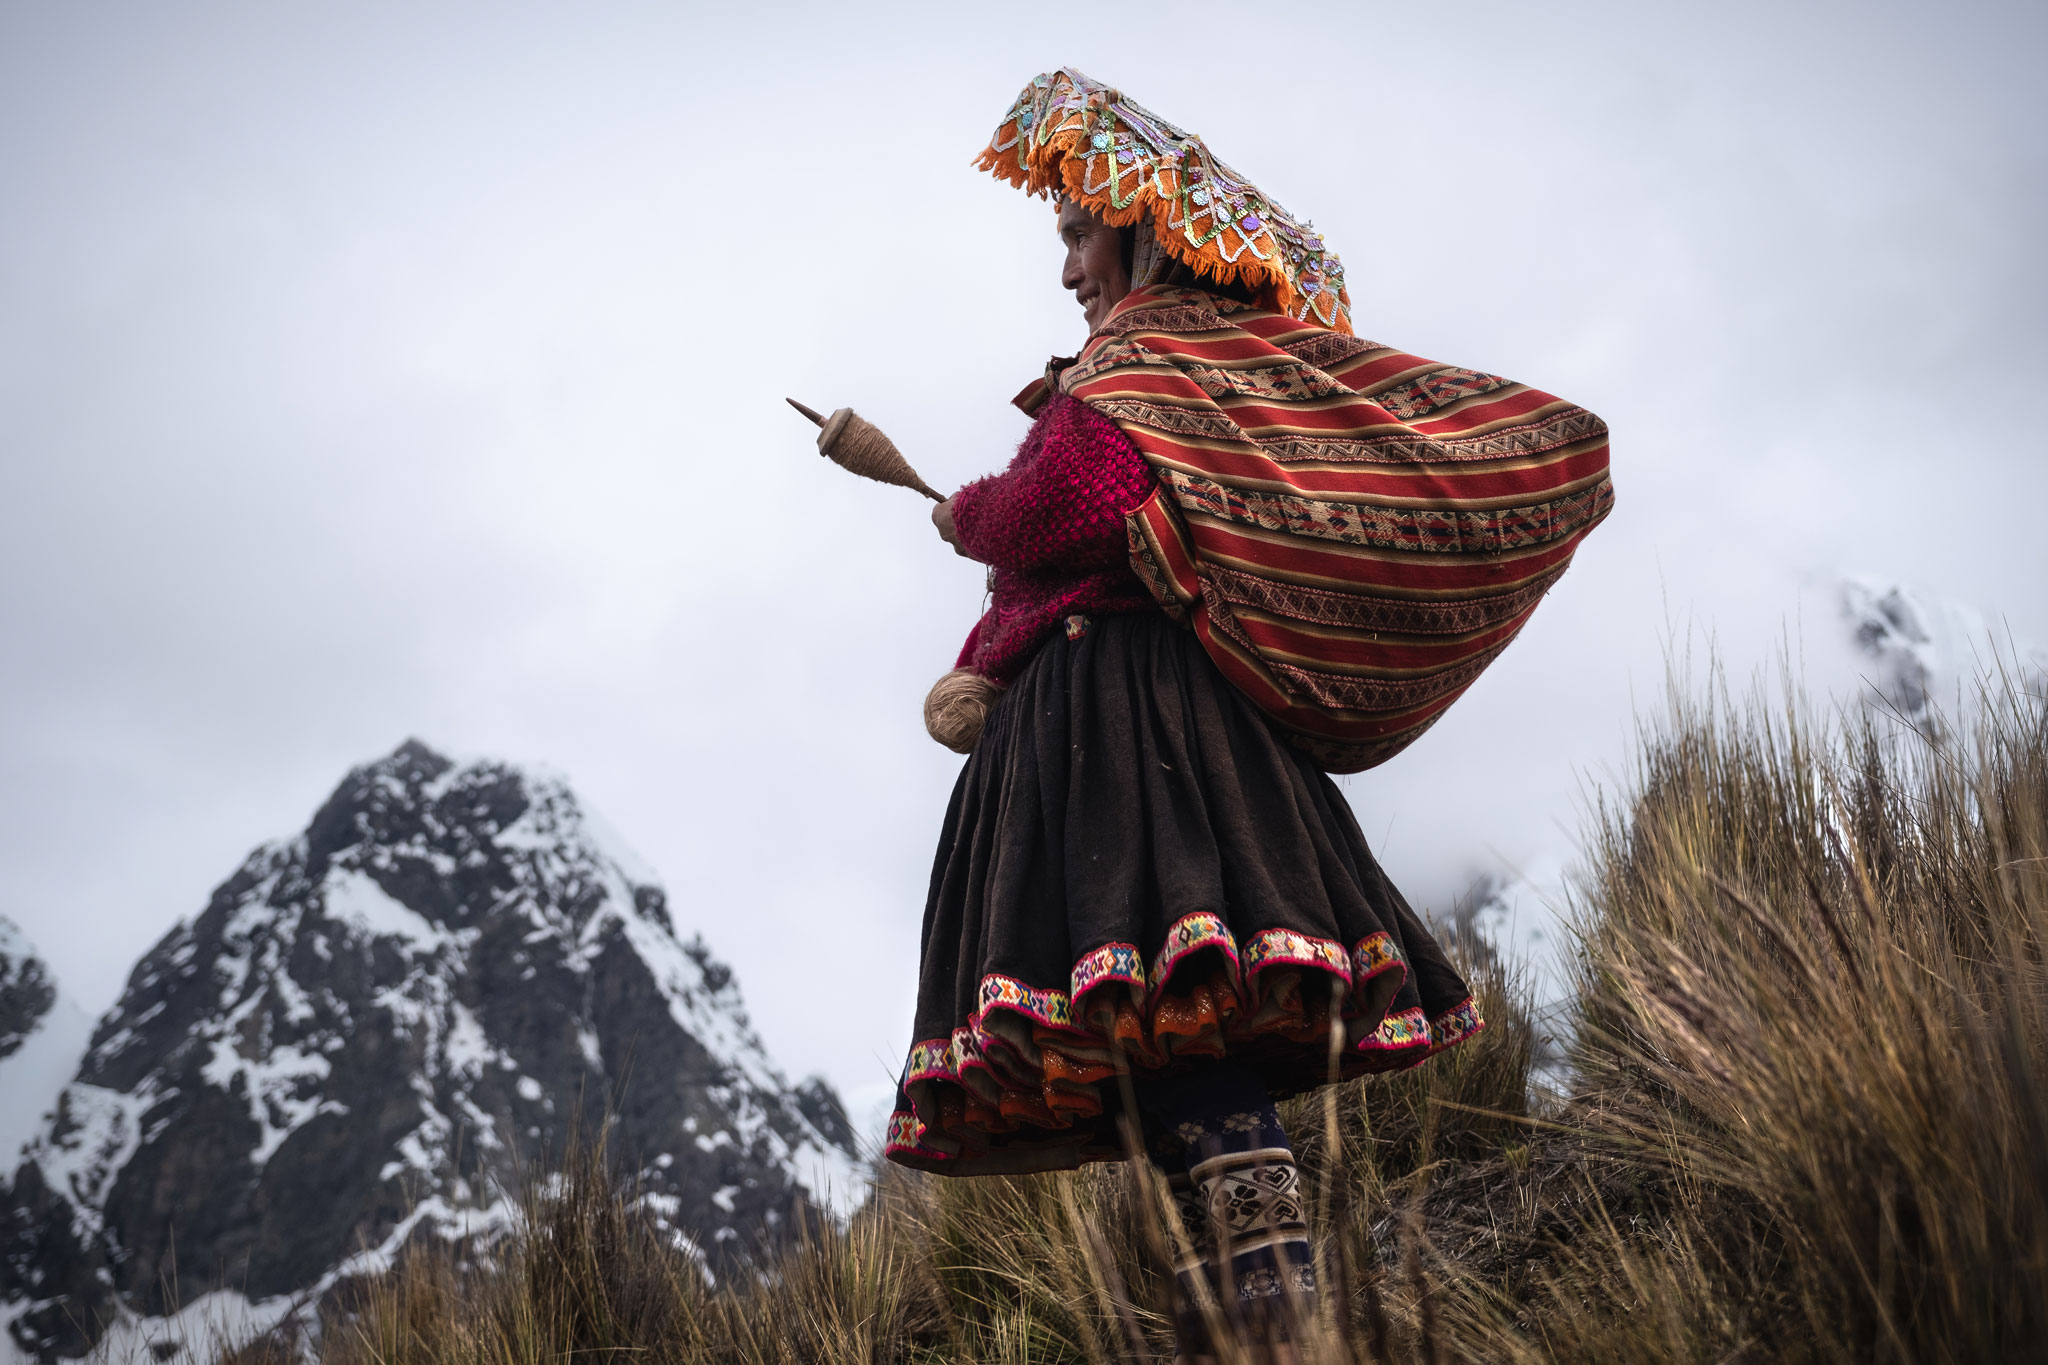 QUECHUA WOMAN FROM THE AUSANGATE